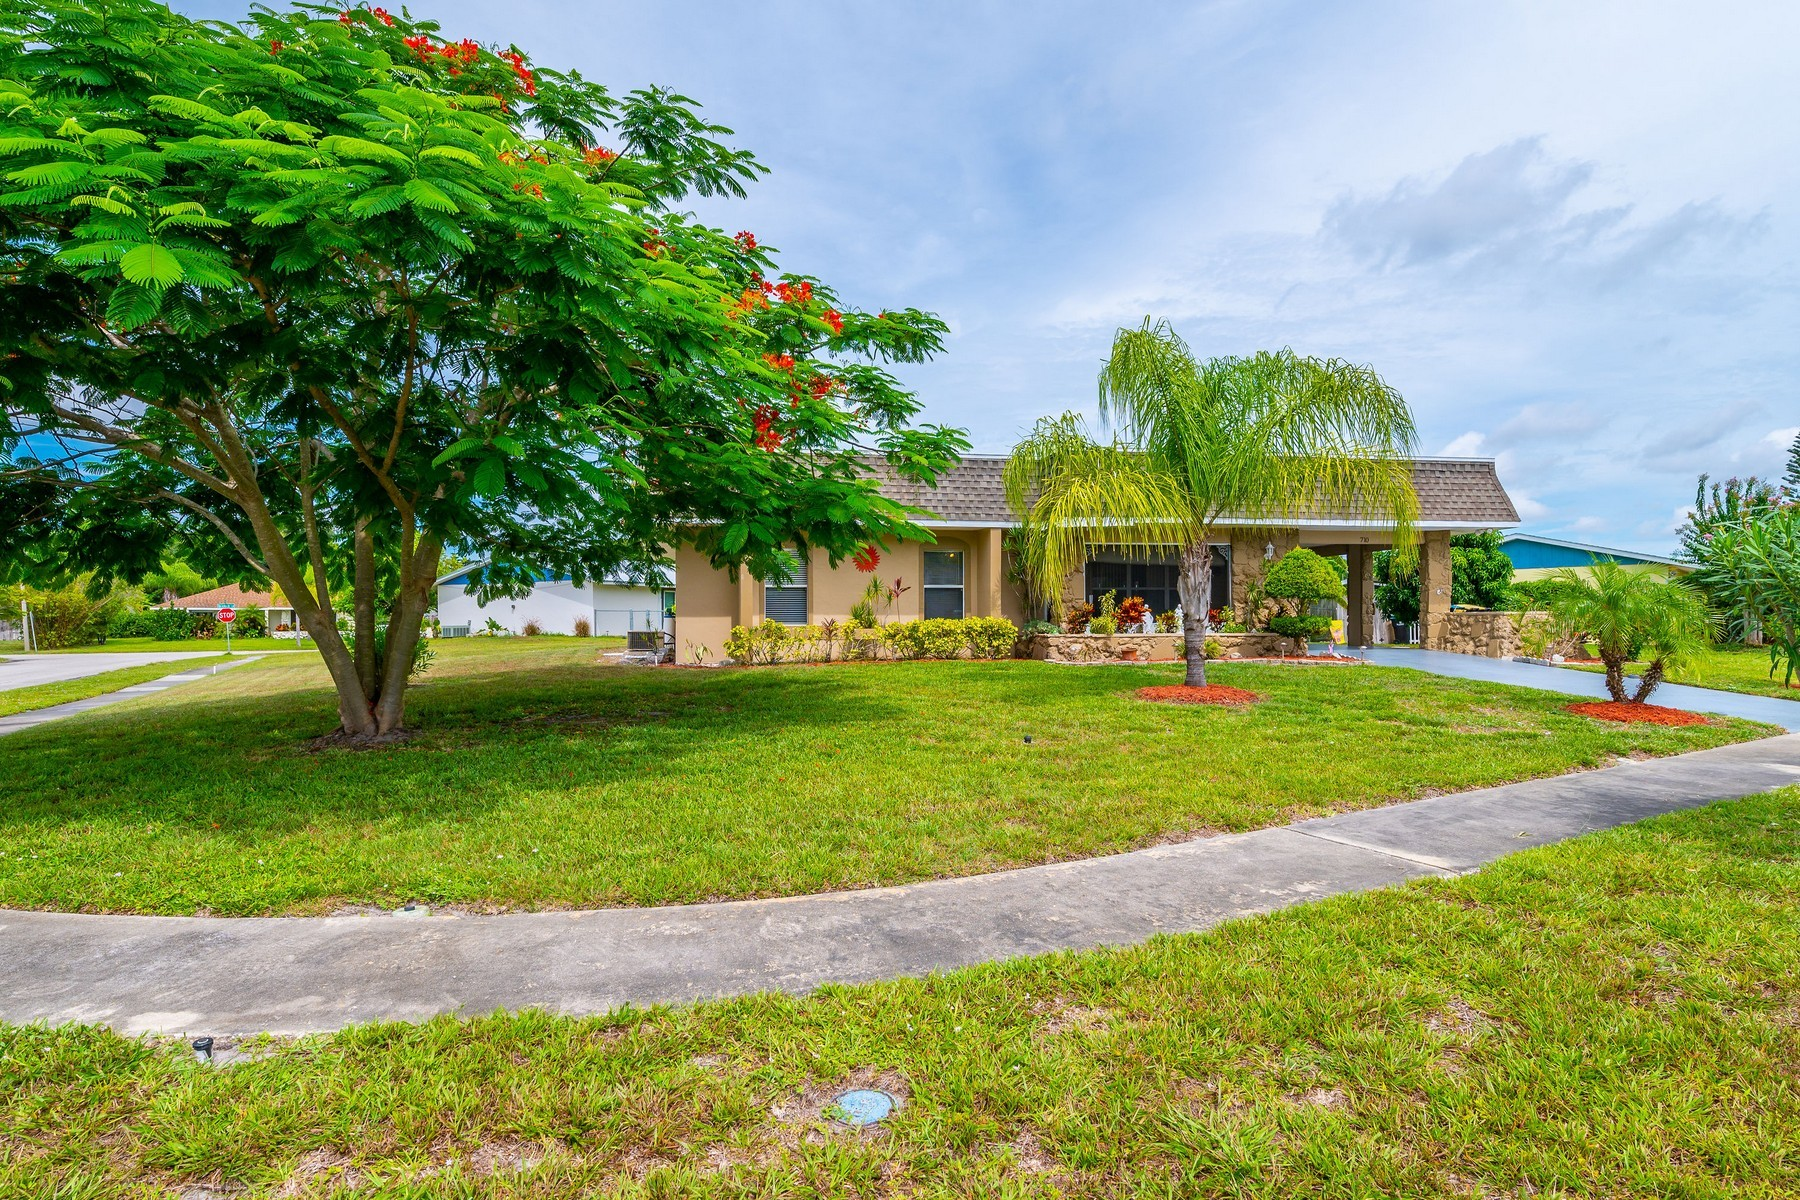 Property for Sale at Nicely Maintained Home in Prime Location 710 Cobblestone Lane NE Palm Bay, Florida 32905 United States